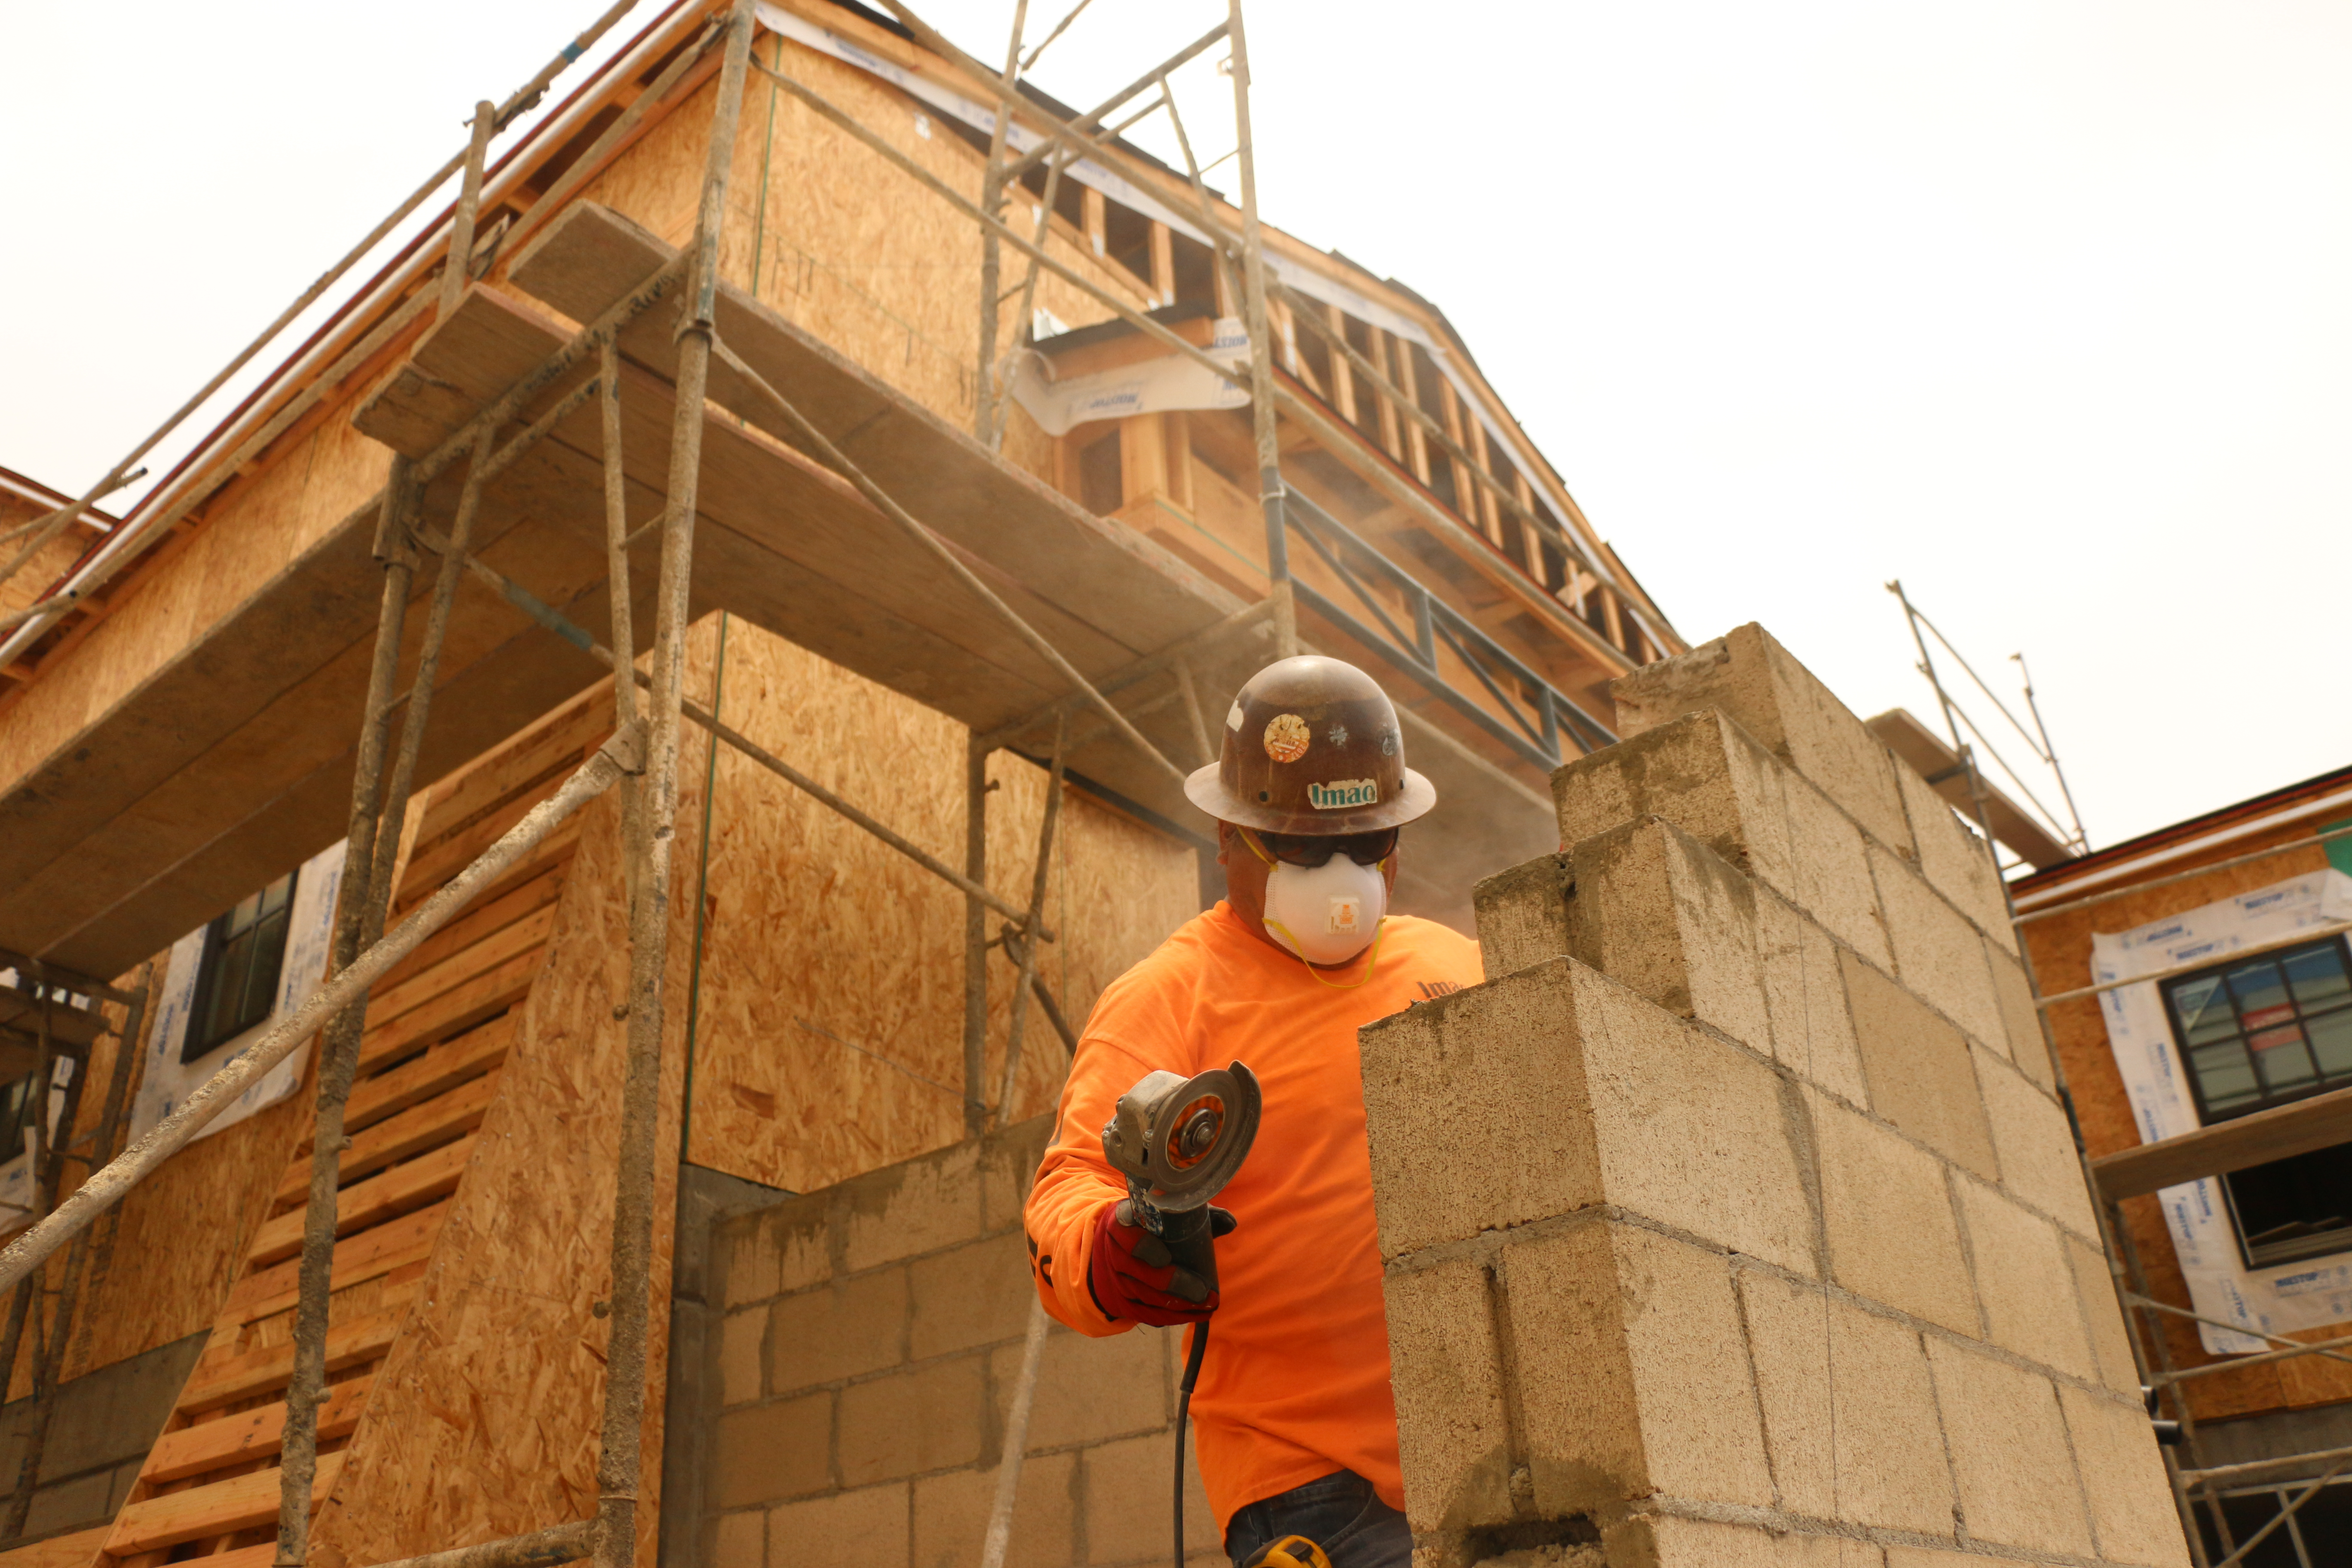 Jose Trujillo of Imac Construction works on a wall Friday, June 12 at the Avenida Serra affordable housing units. The complex is expected to receive applicants for wait lists later this month or in July. Photo: Eric Heinz